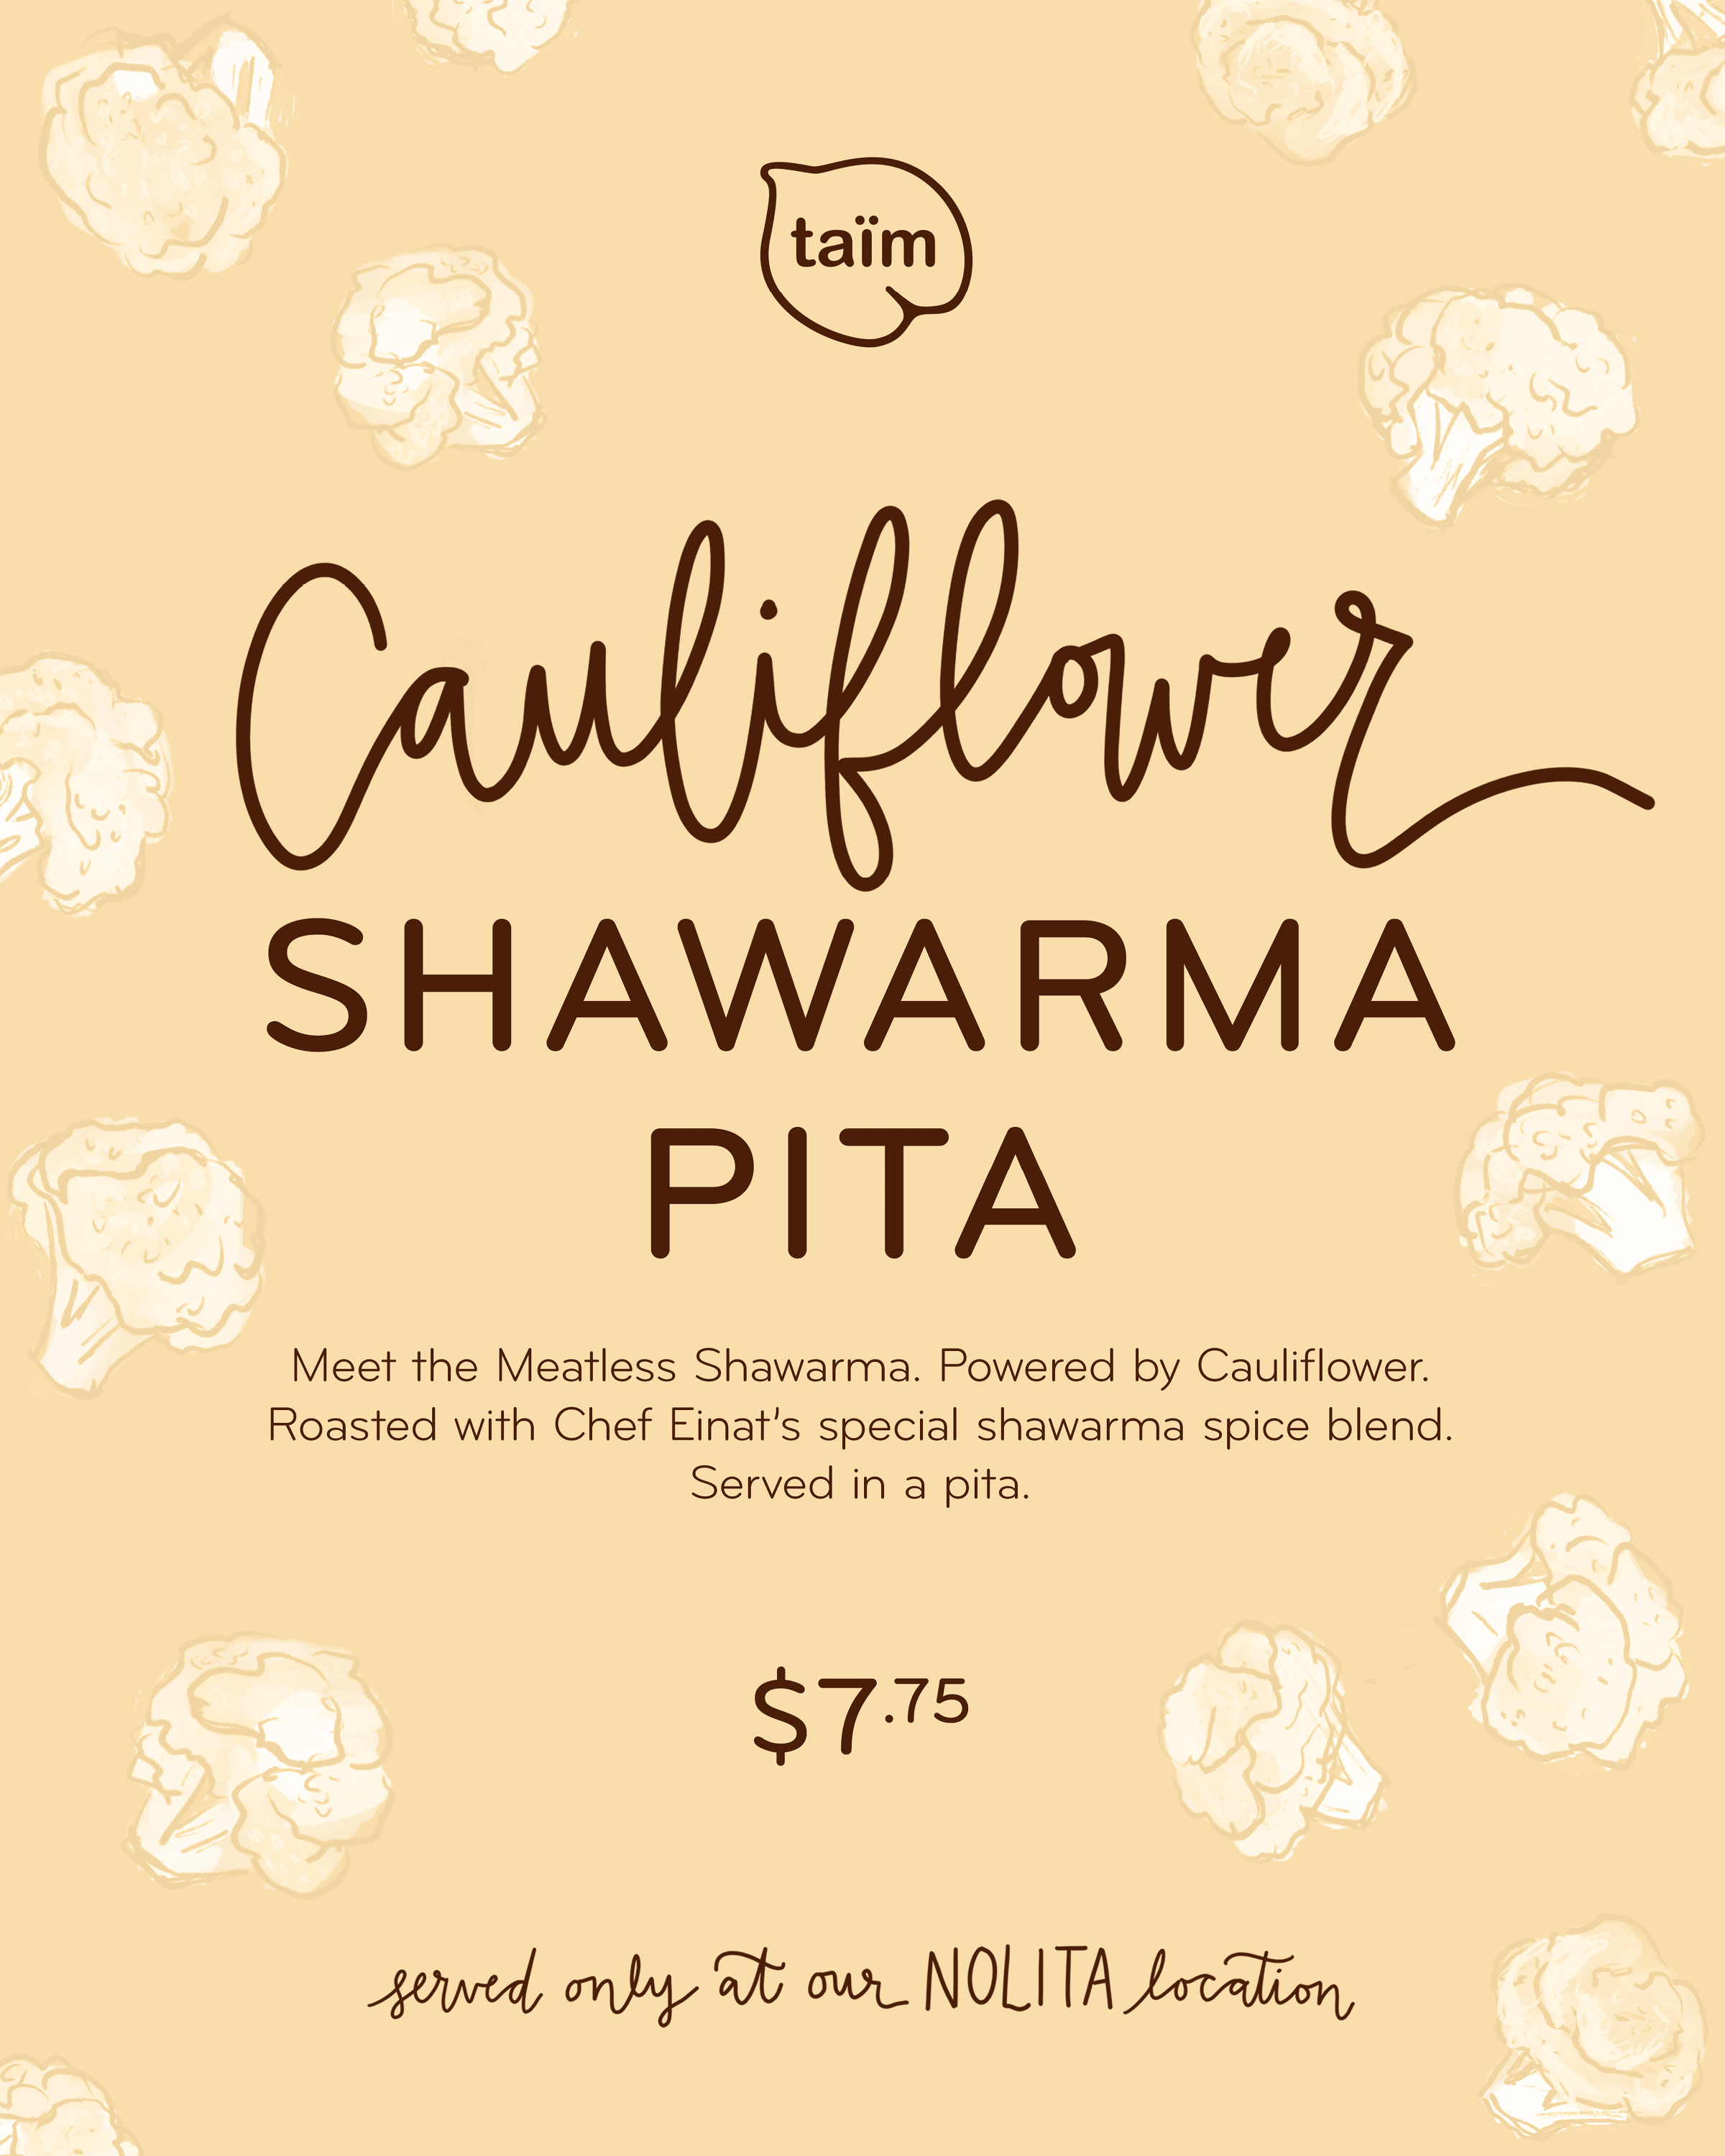 Cauliflower Shawarma 8x10 - Final.jpg